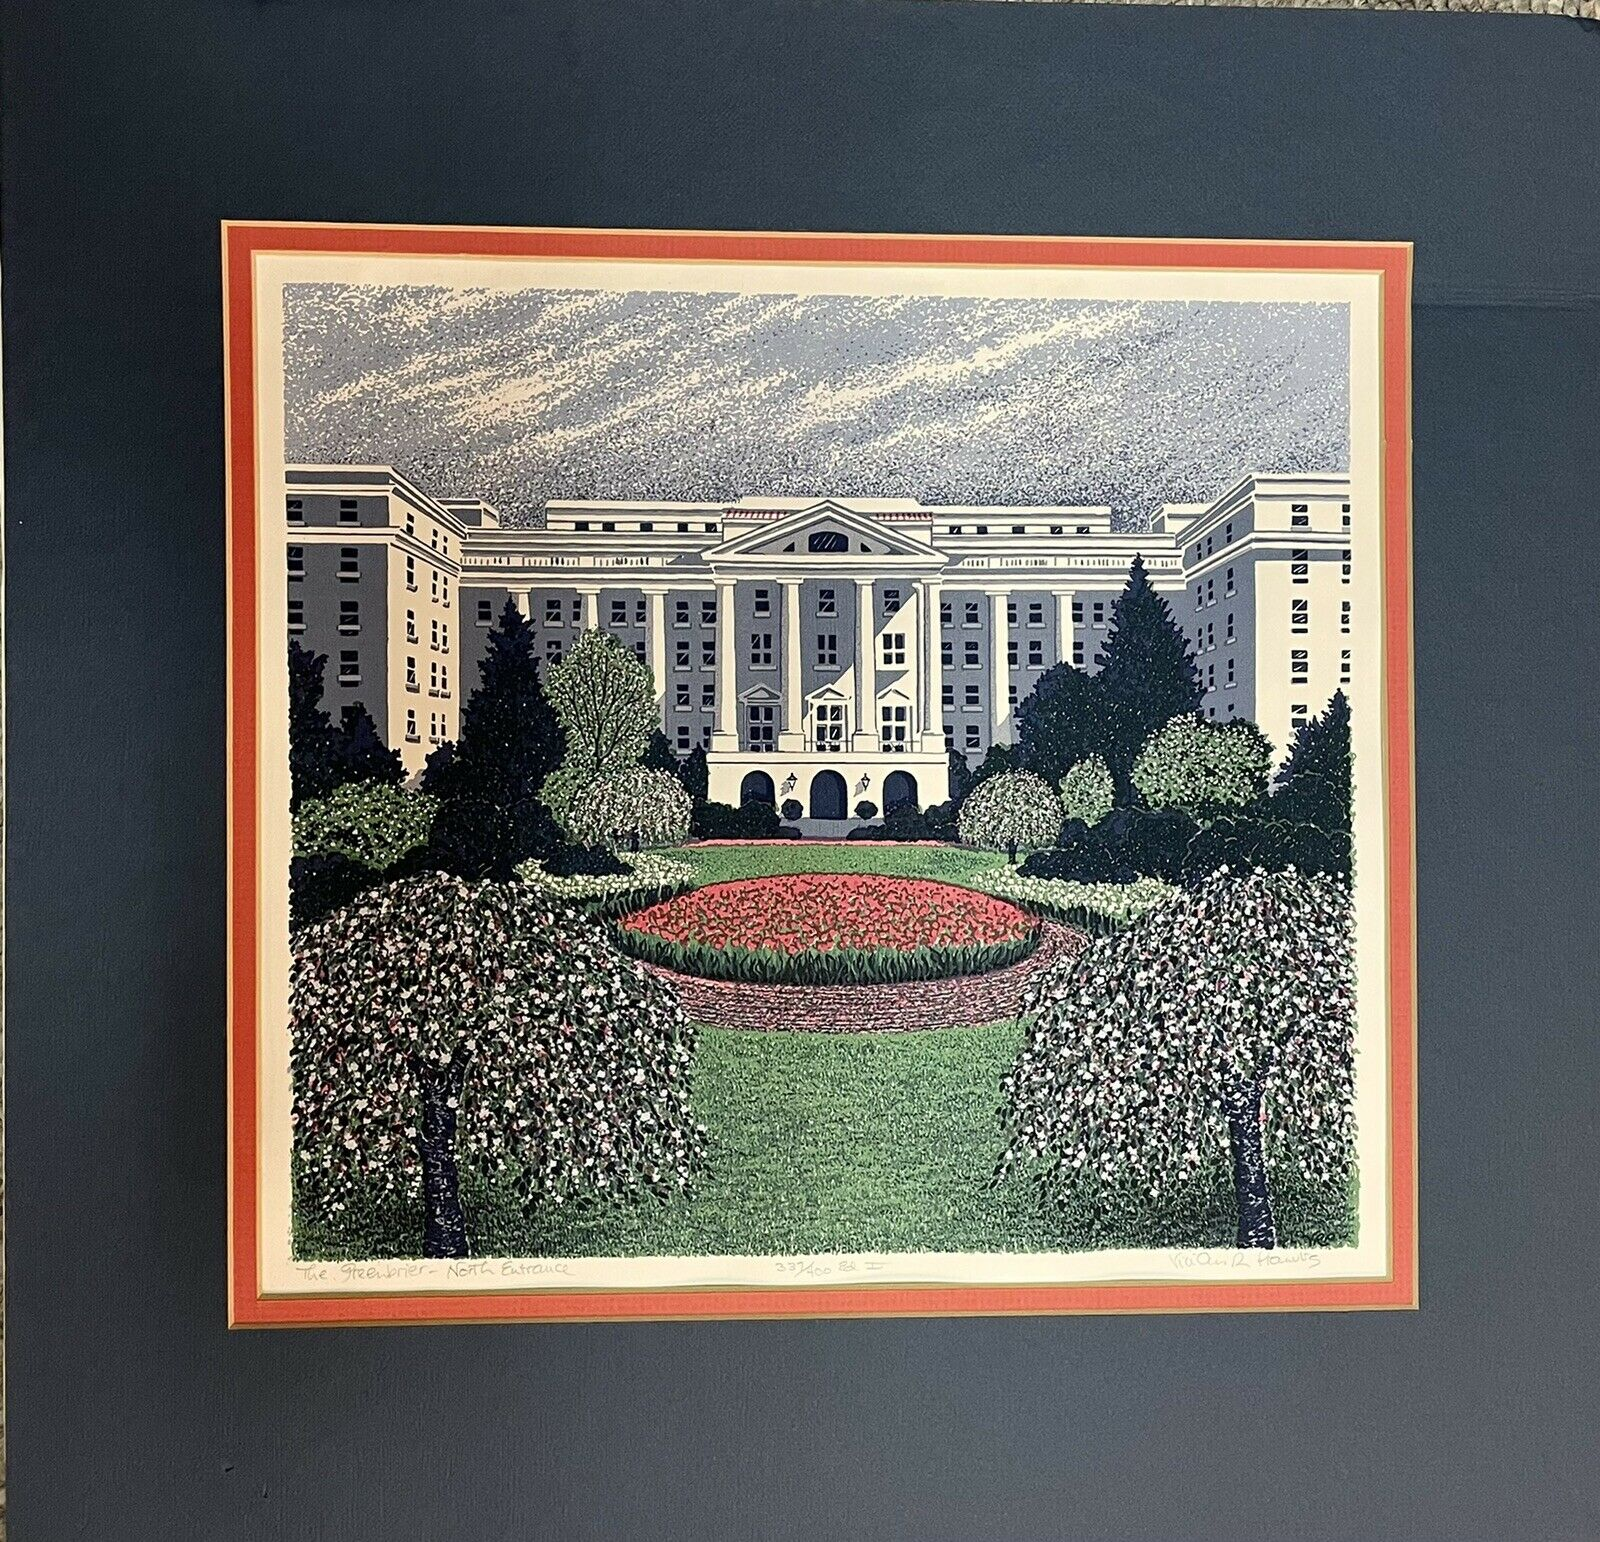 Vivian R. Pranulis Limited Edition Seriagraph Signed #337/400 The Greenbrier WV on eBay thumbnail